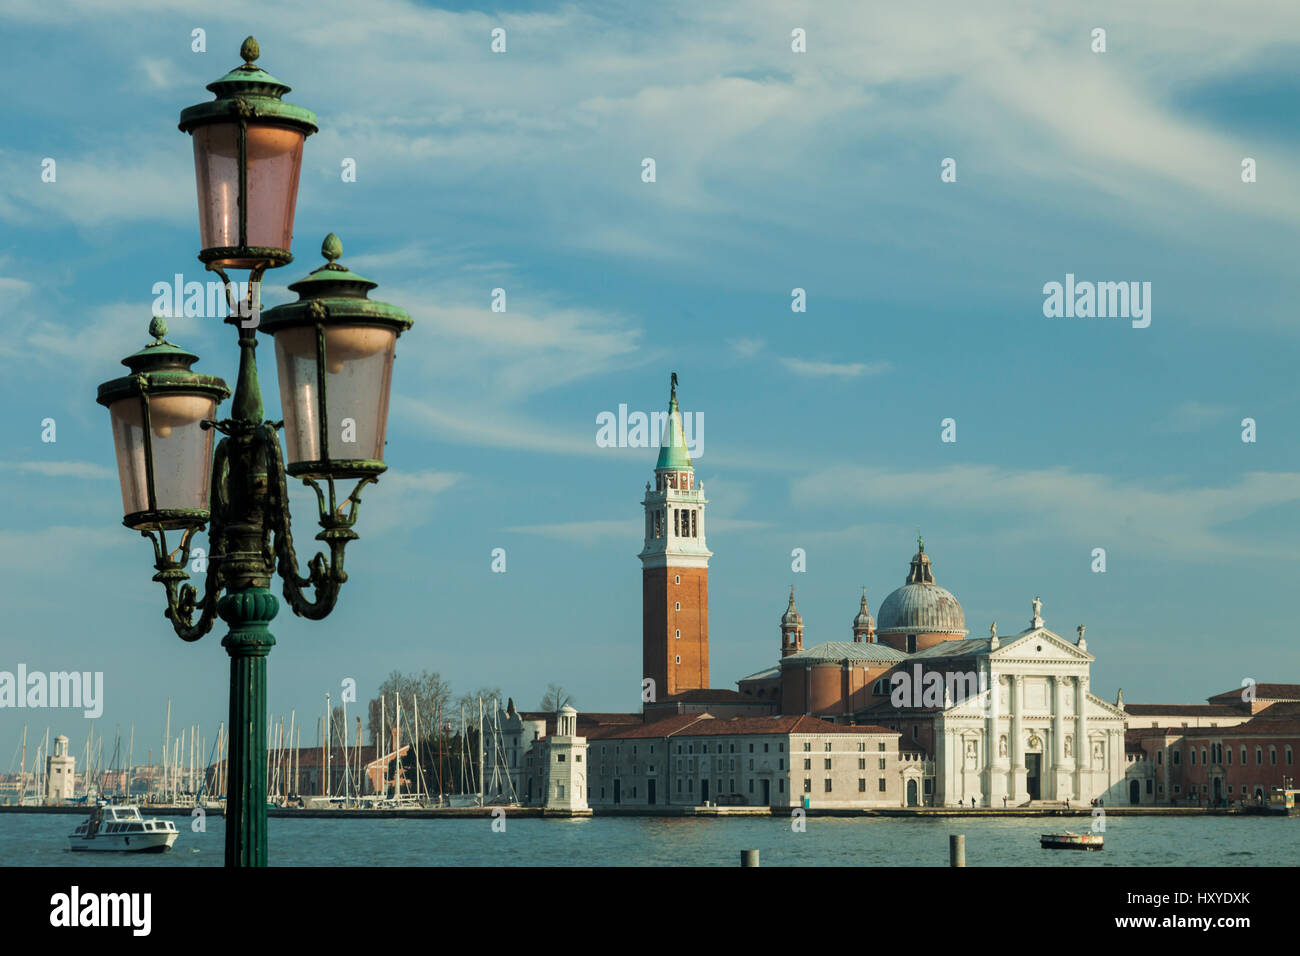 Spring afternoon in Venice, Italy. San Giorgio Maggiore church in the distance. - Stock Image